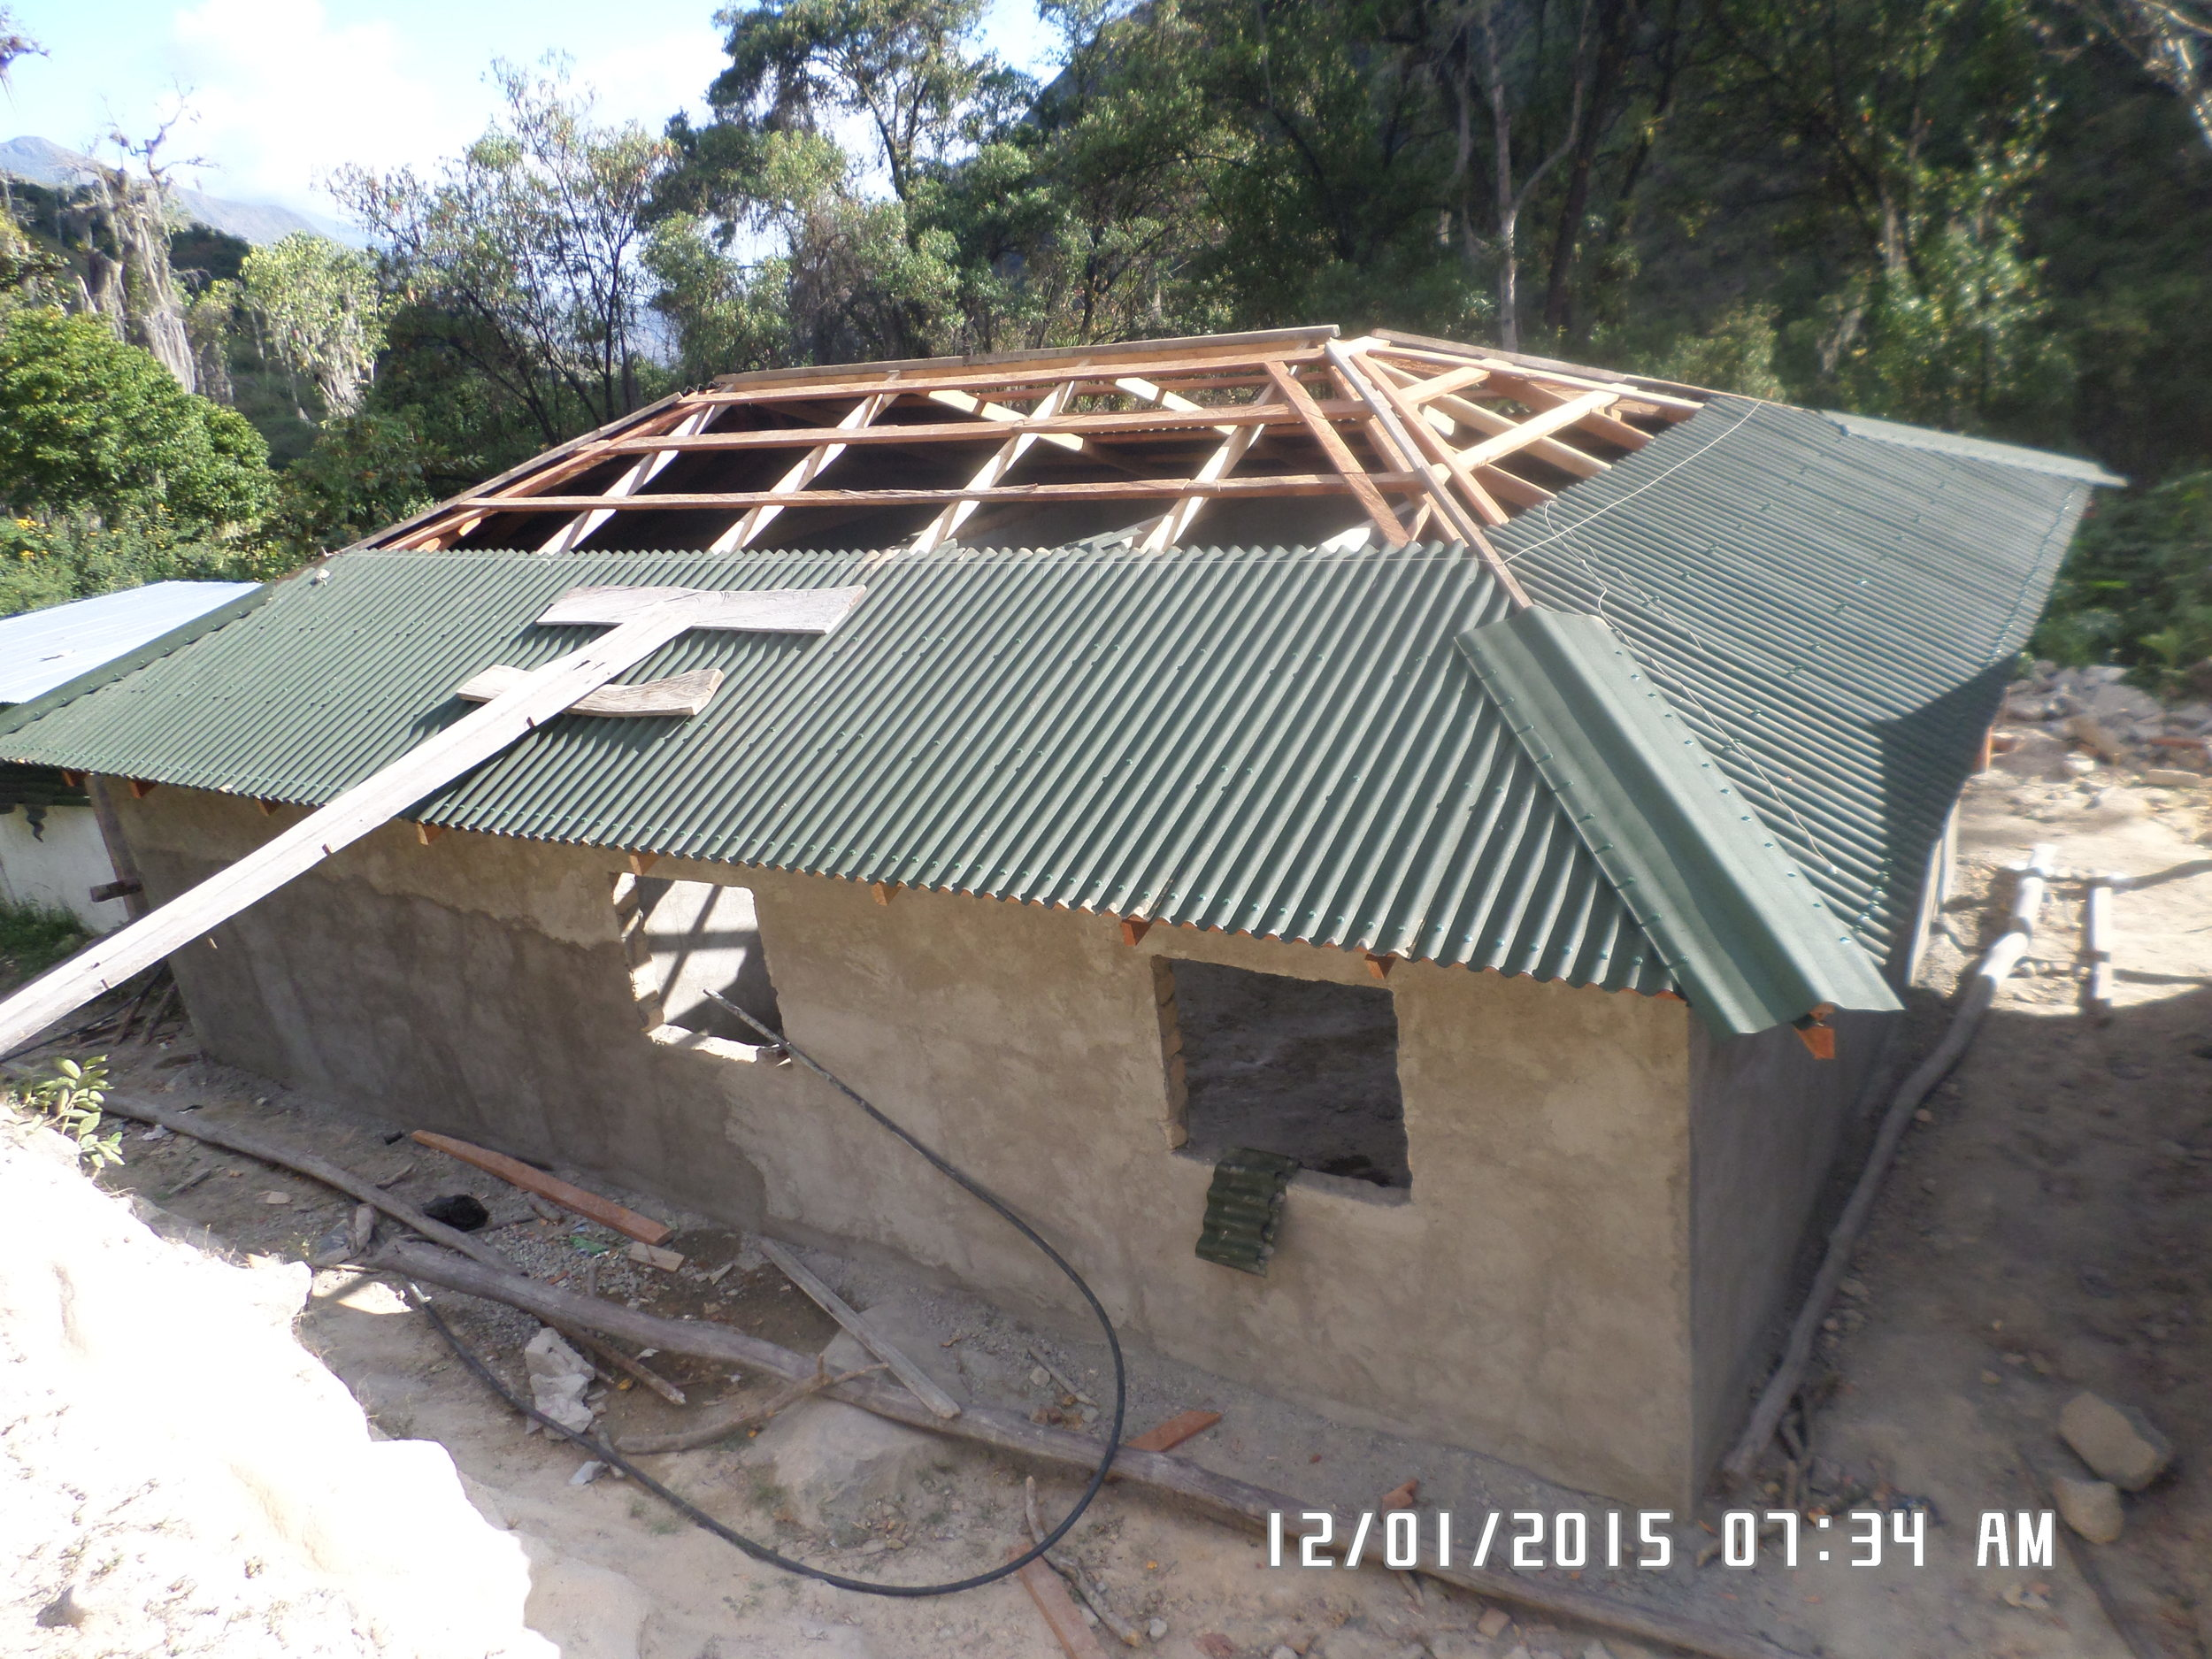 Roof is almost completed